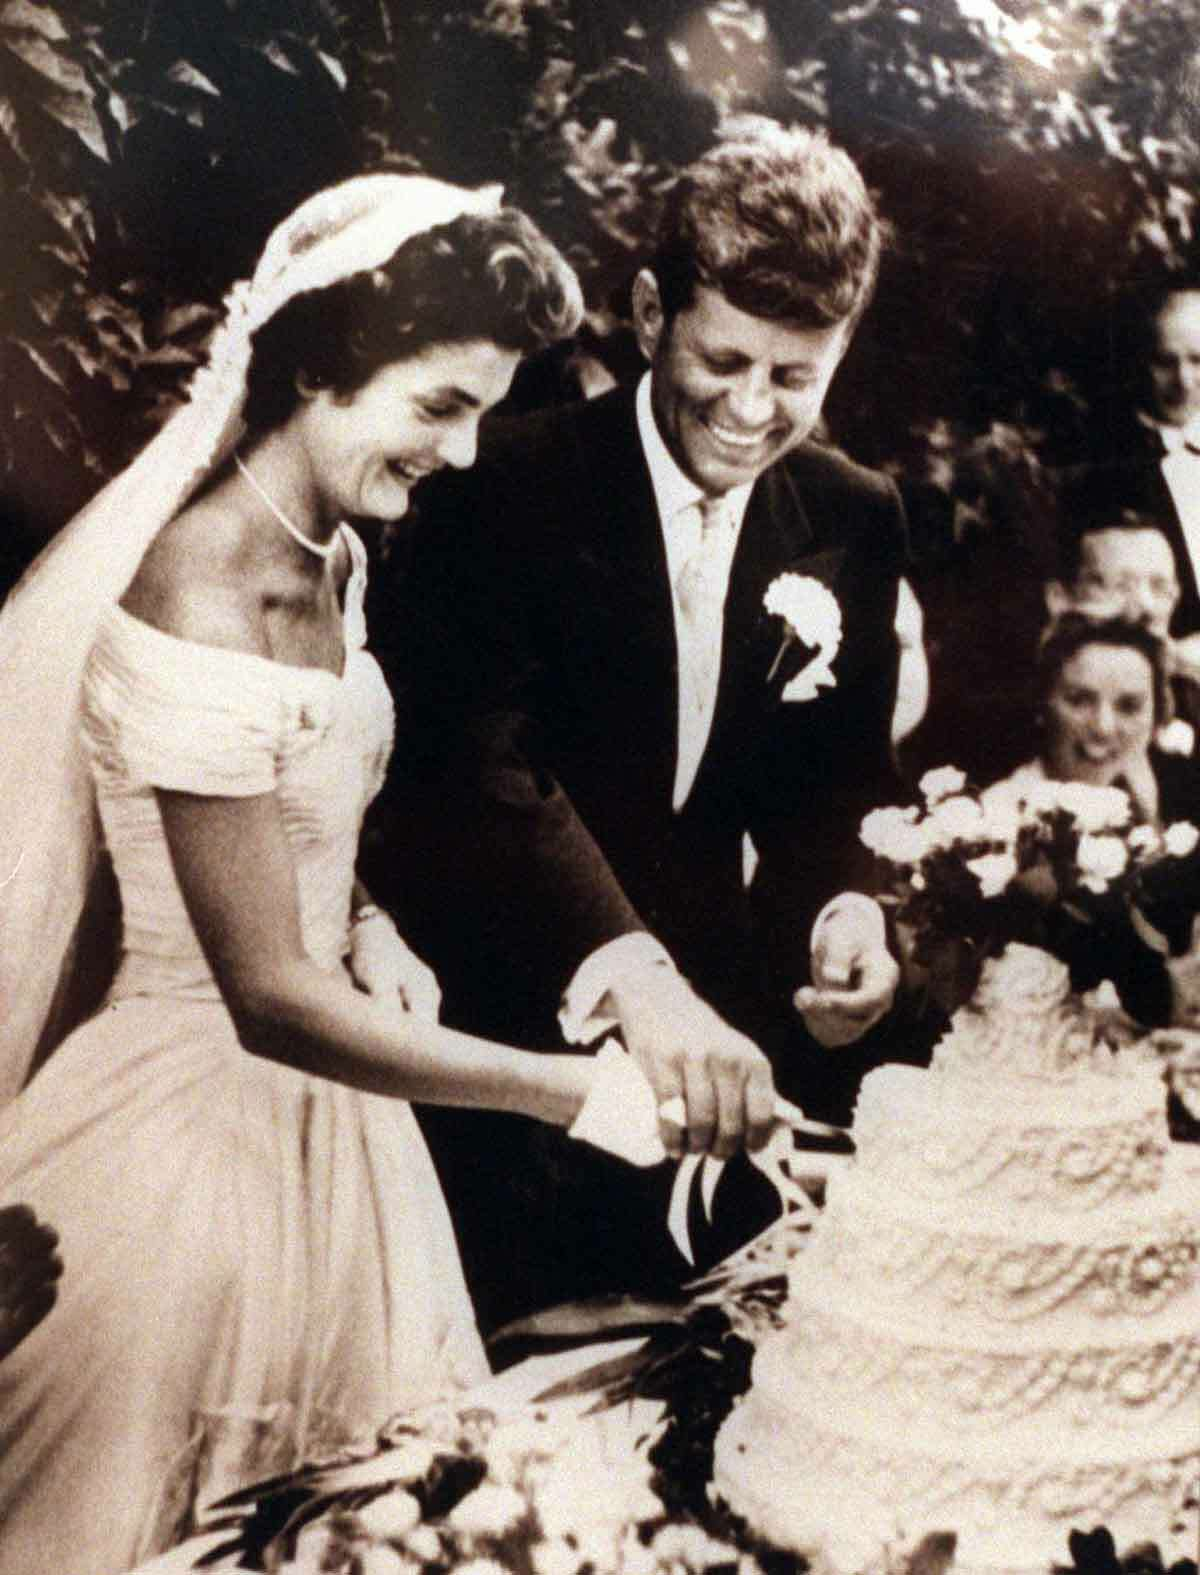 An archive photo of John F. Kennedy's wedding in the